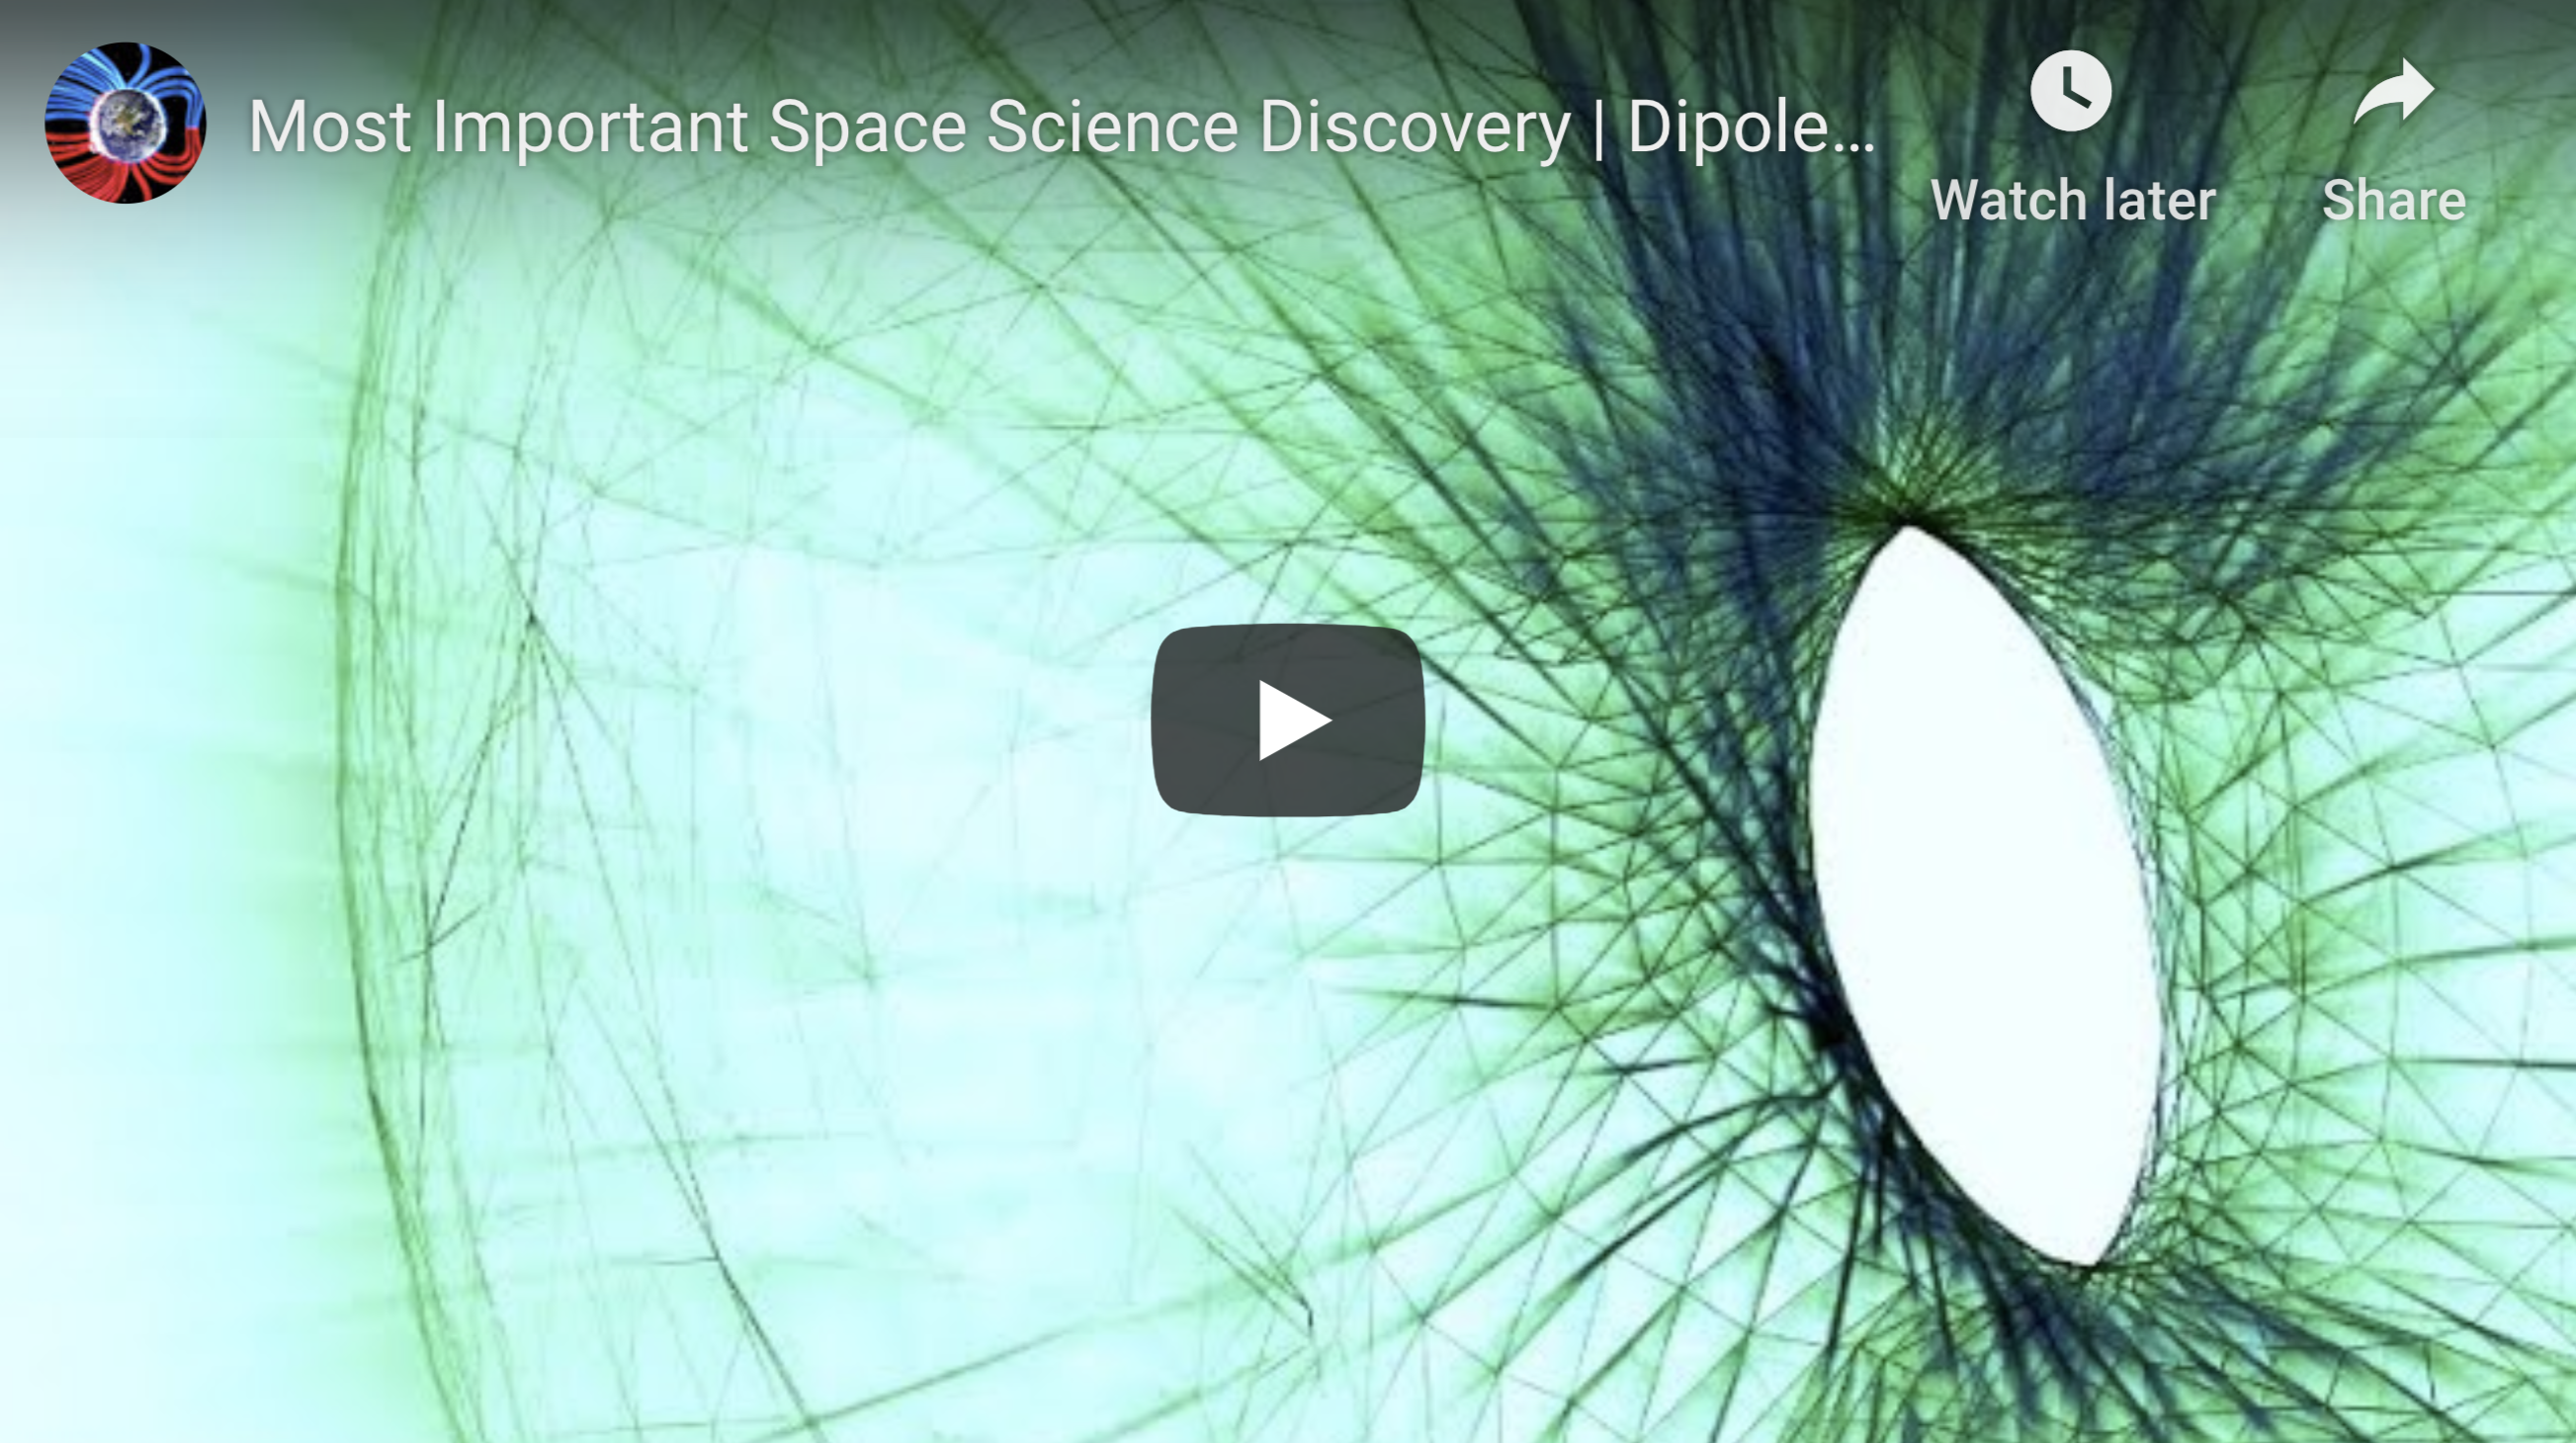 Most Important Space Science Discovery Dipole Scalable Universe 5 9 2020